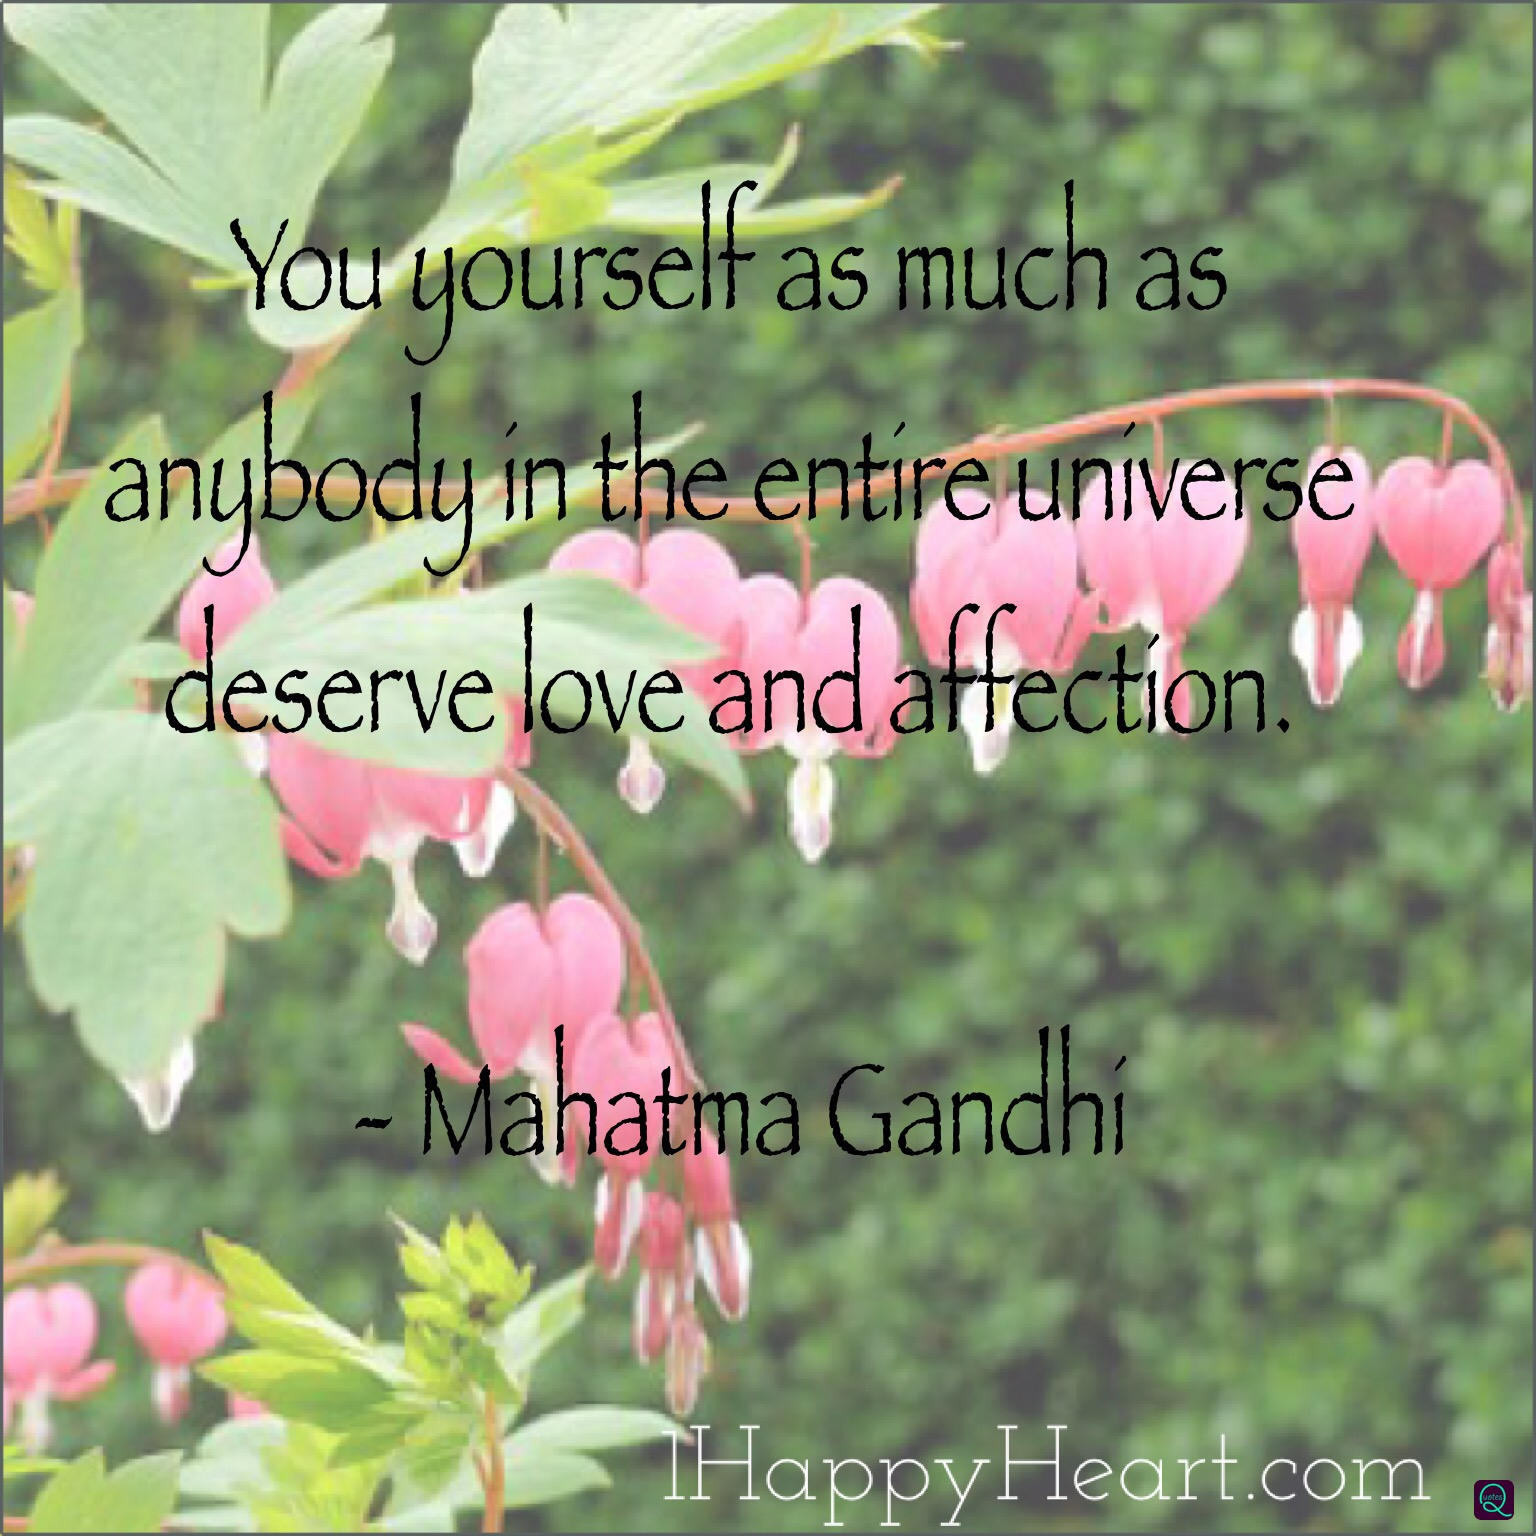 You yourself deserve love